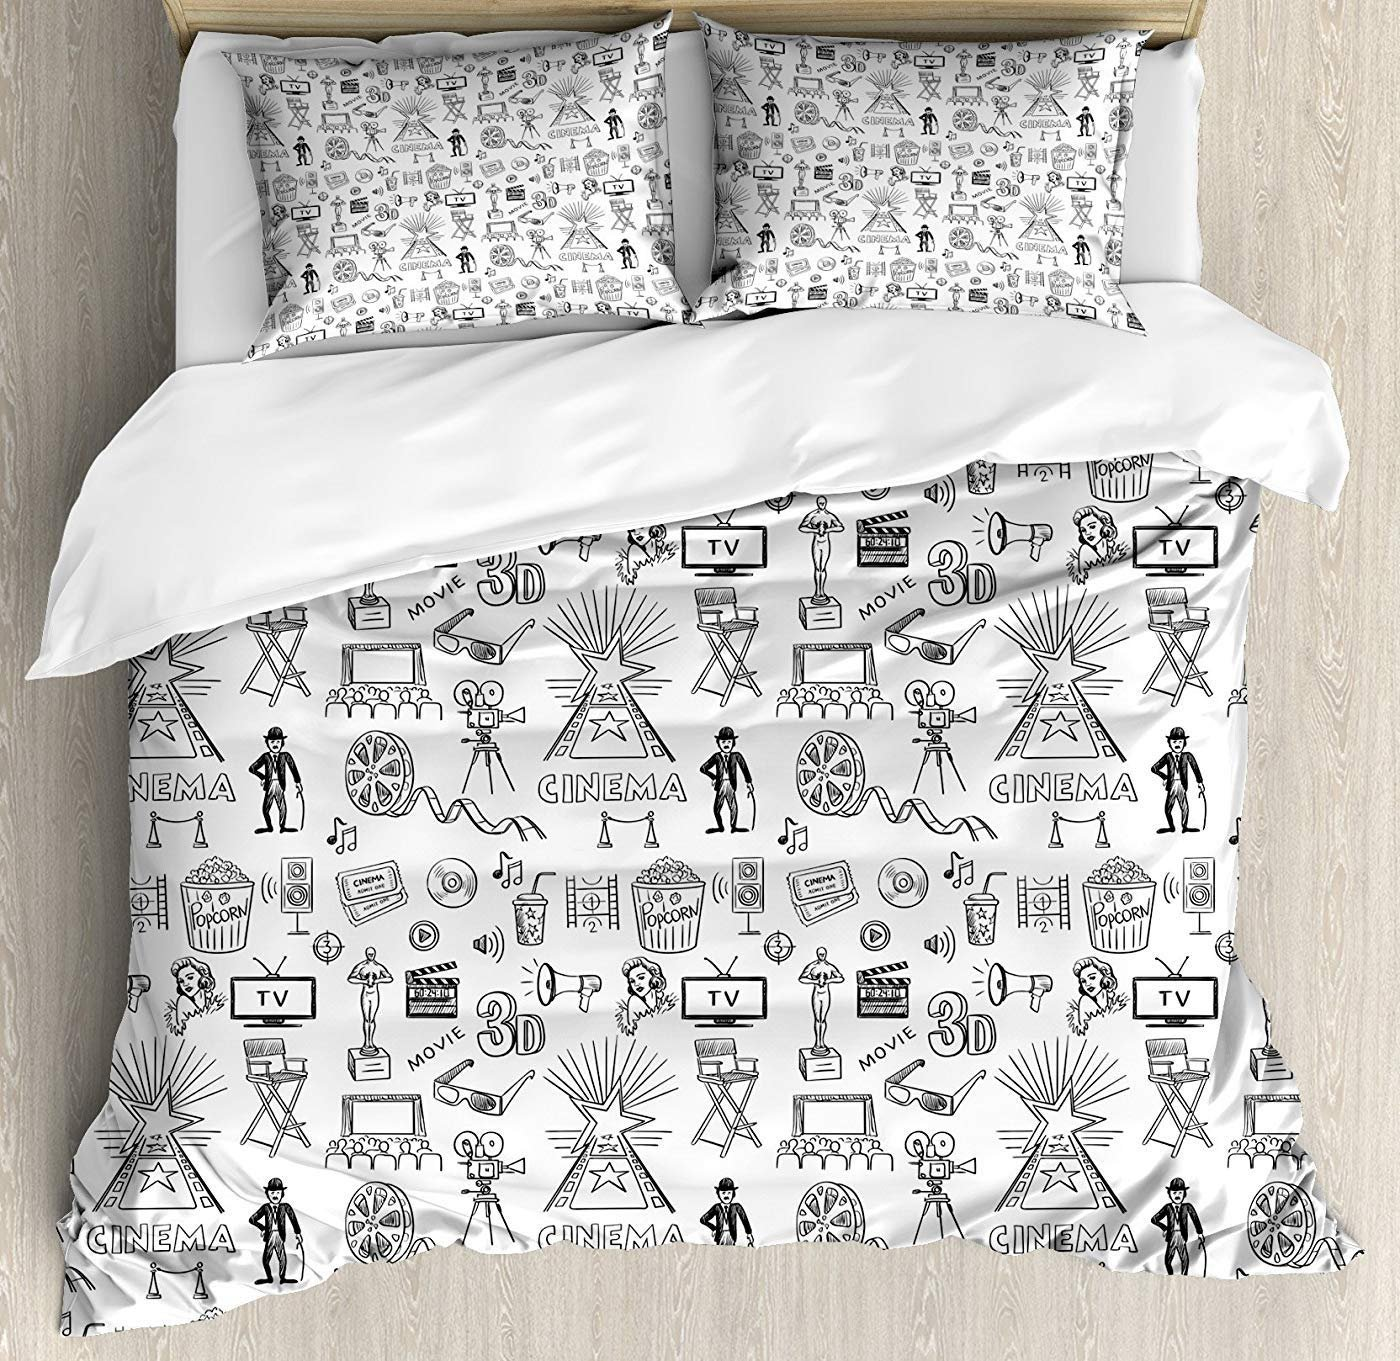 4 Piece Bedding Set Twin Size, Movie TheaterHand Drawn Style Cinema Pattern with Various Different Icons Black and White Floral,Duvet Cover Set Quilt Bedspread for Childrens/Kids/Teens/Adults